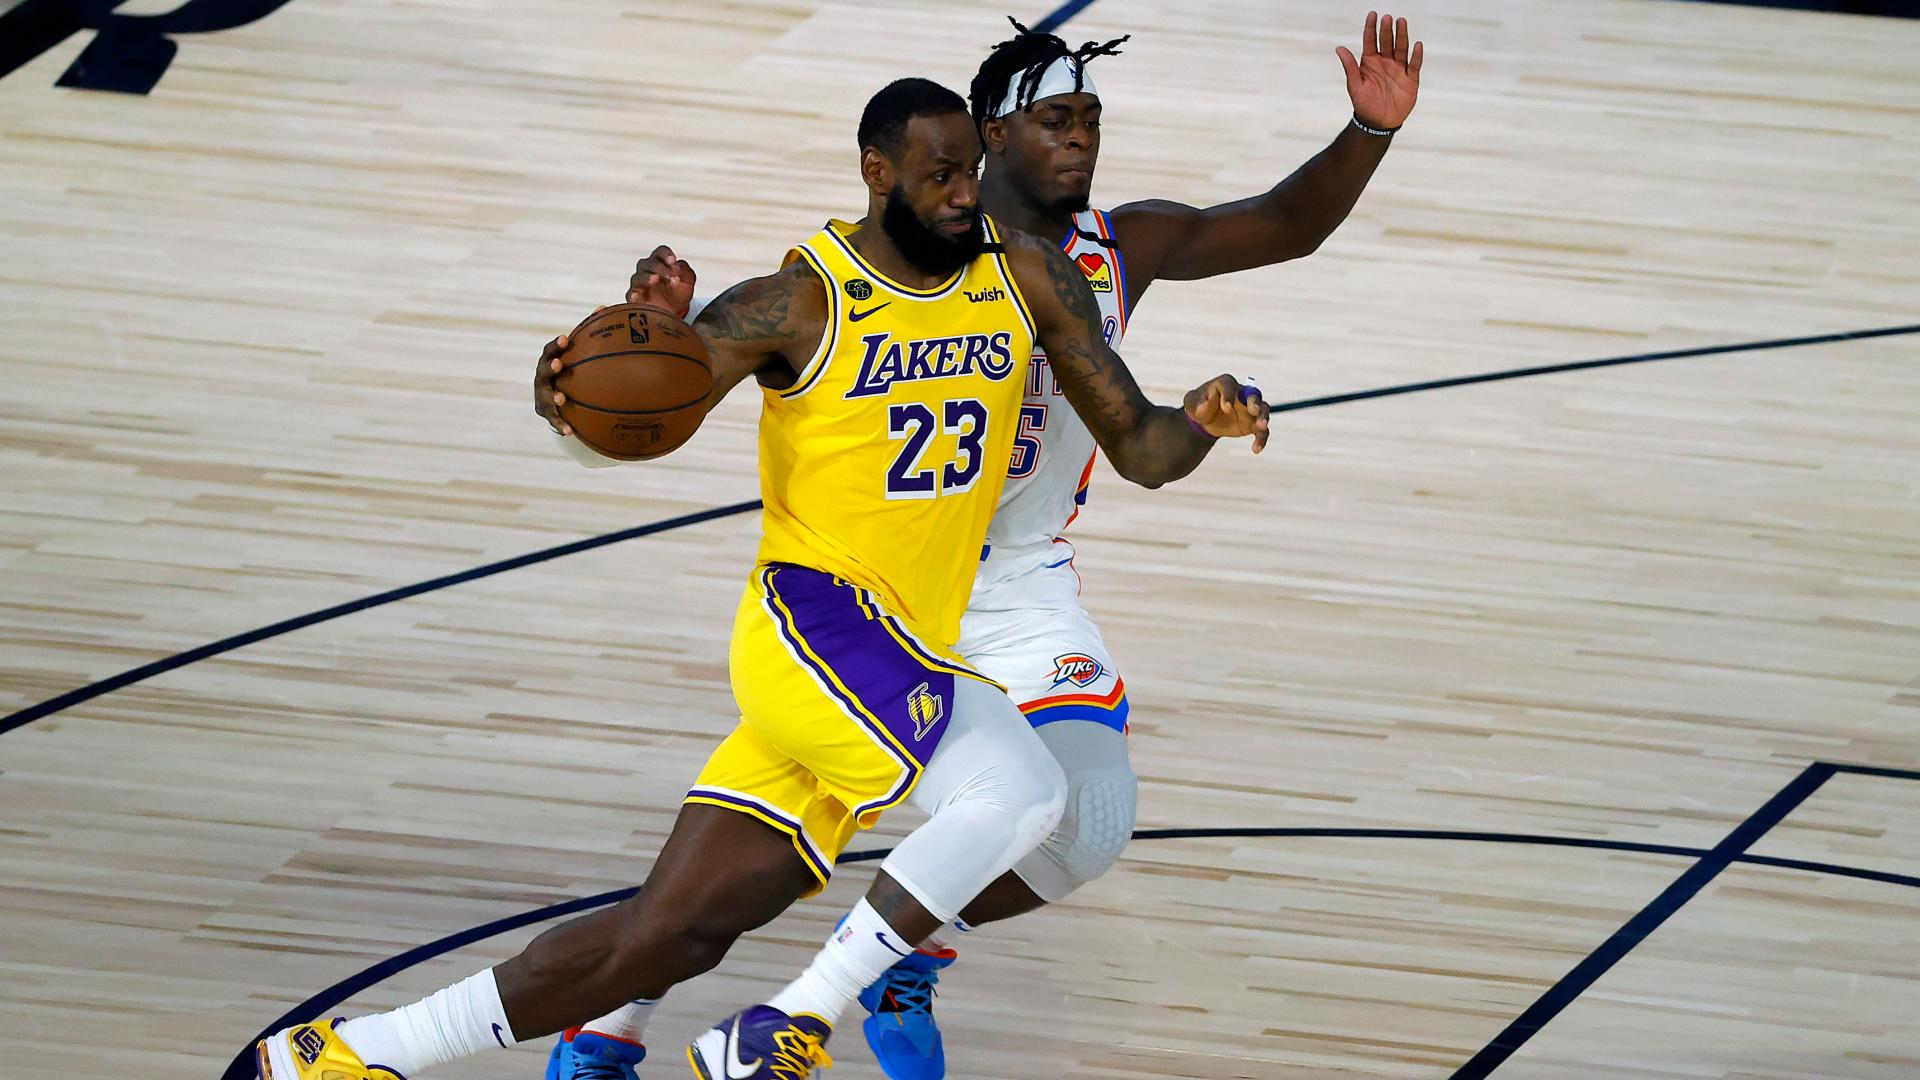 Lakers fall to Thunder, Embiid leads 76ers